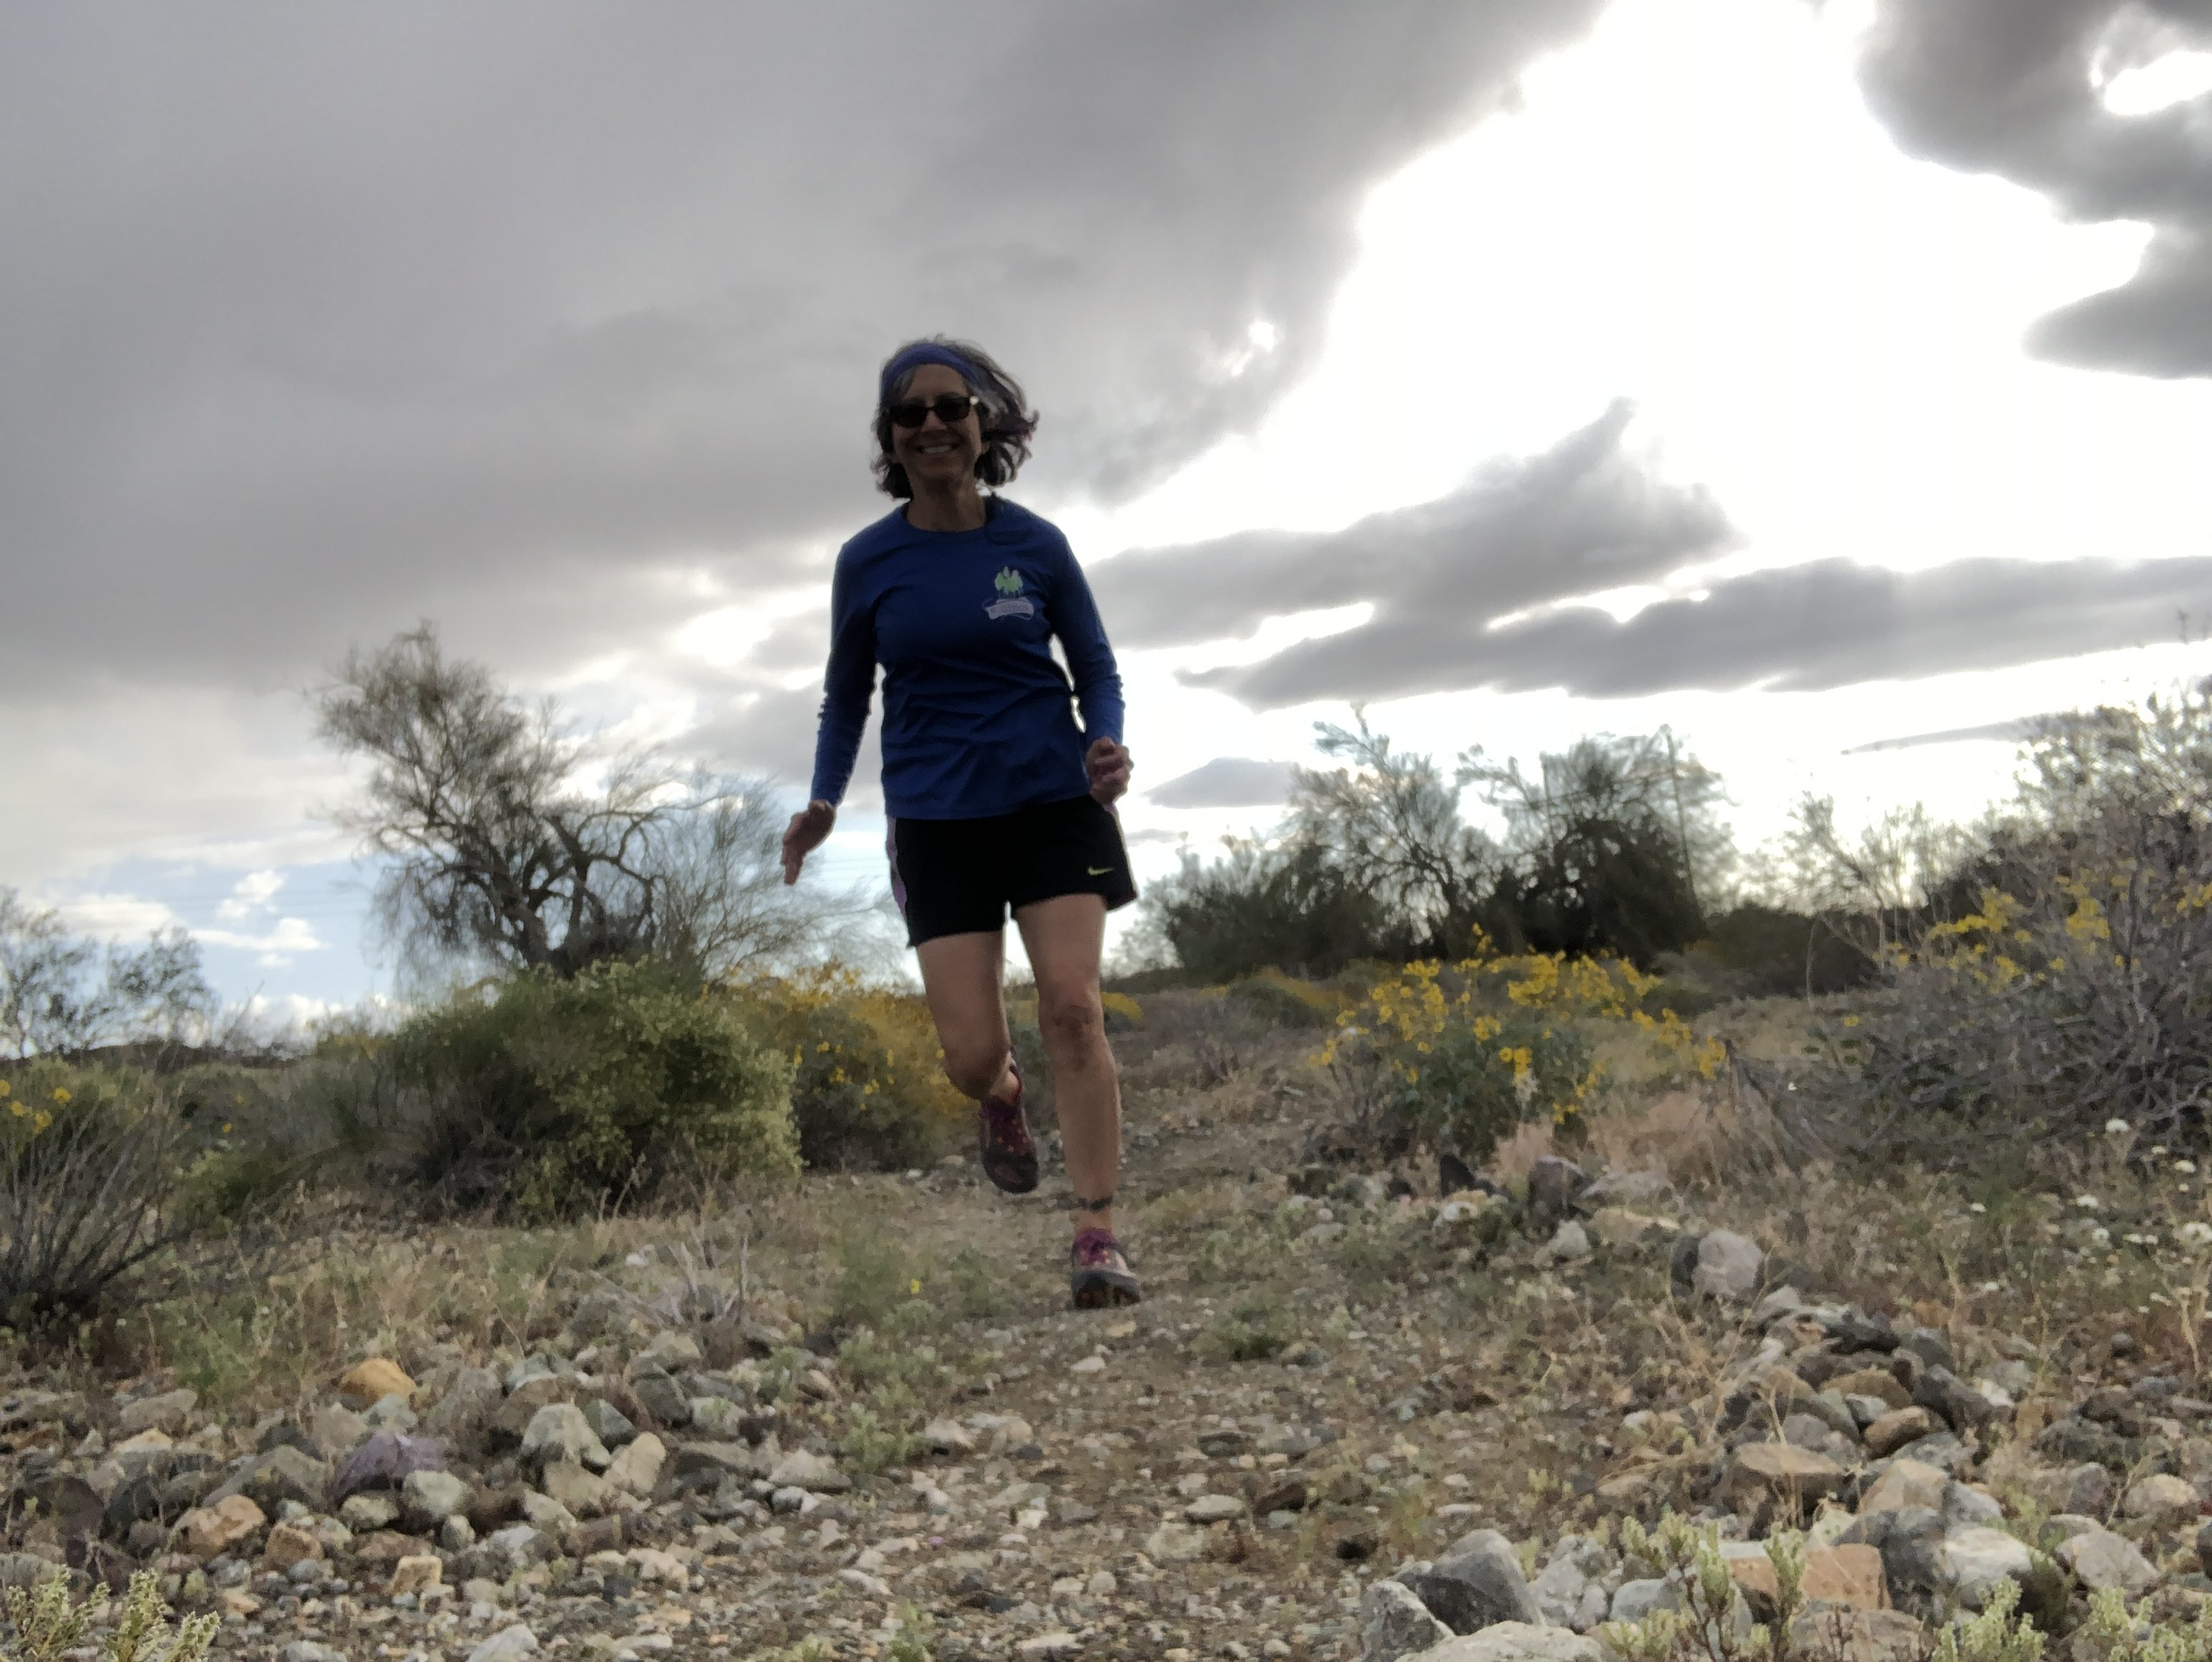 A woman running down a trail under gray skies.